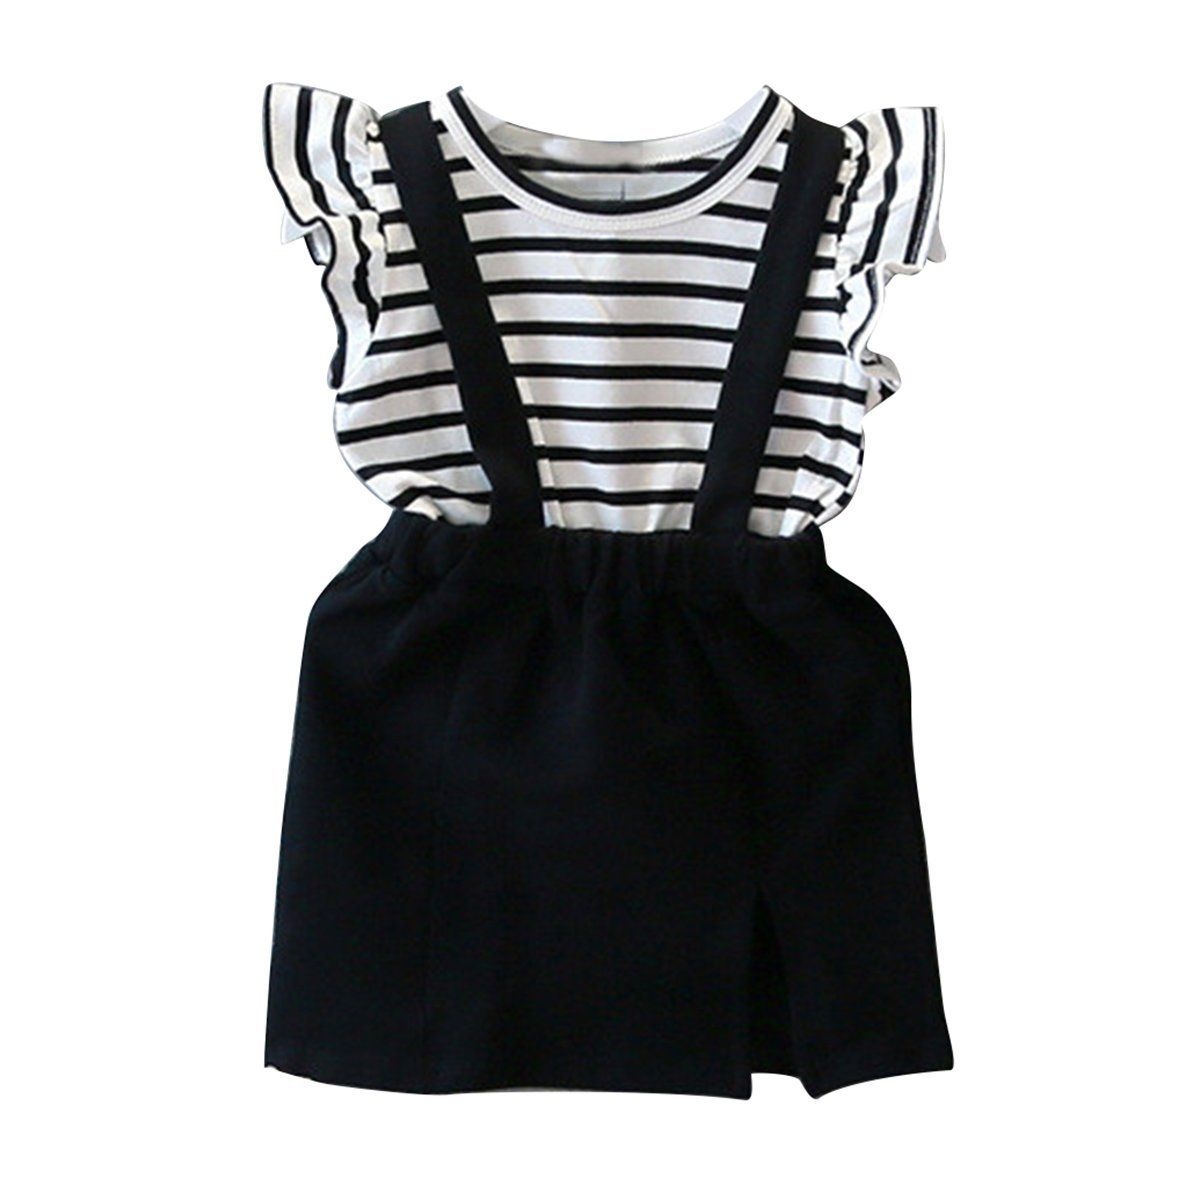 Toddler Kids Baby Girls Summer Outfits Clothes Stripe T Shirt Tops strap Dress 2PCS Set Kid Baby Princess Girls Clothes Set 2-7T baby set girls stripe i woke up like this toddler shirt pants 2pcs outfits set